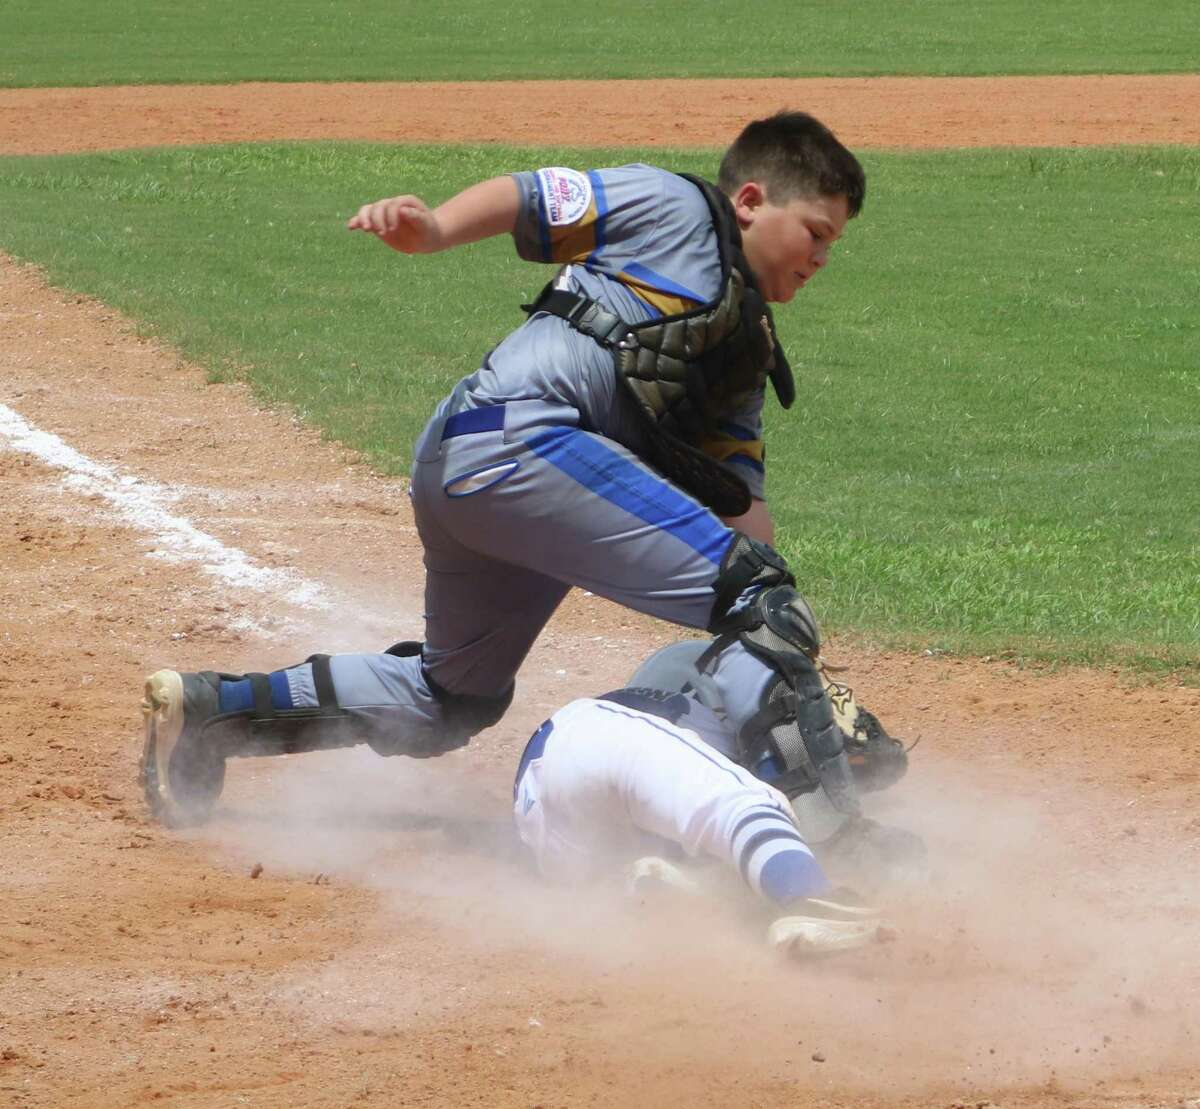 A Friendswood player slides under the PYBSA catcher for a run that helped give the team a 10-3 advantage Thursday.